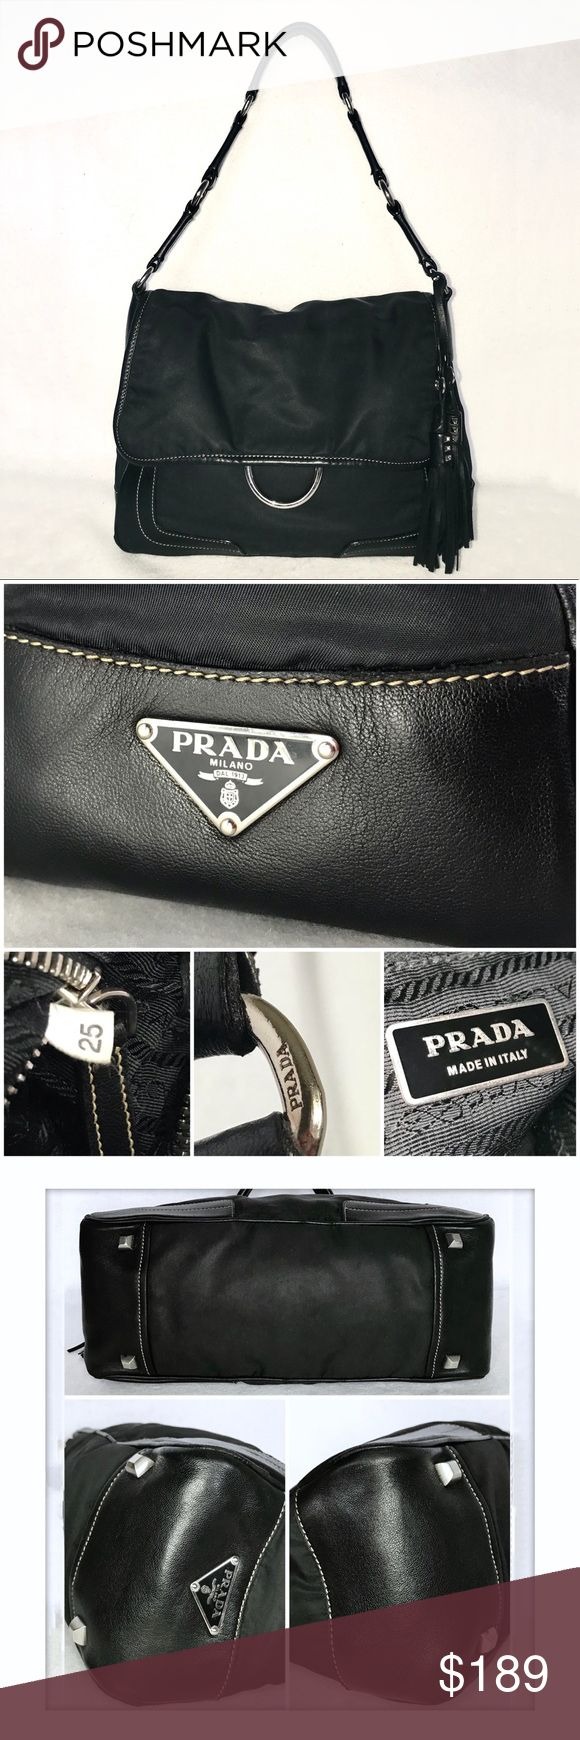 """PRADA Tessuto Nero Leather Trimmed Tassel Bag PRICED TO SELL - TRADE VALUE $249  💯% Authentic  🖤 Great Condition 🖤 No damage (scratches, scrapes, holes, odor).  Nylon w/ contrast stitching & leather trim. Silver hardware. Flap closes over zip closure. 1 inner side pocket w/ metallic logo plate. Signature PRADA jacquard lining. Signature PRADA metallic logo plate on side.  H: 9"""" L: 12"""" D: 5"""" Strap Drop: 11""""  All of my bags are carefully wrapped. Only shipped in boxes. Prada Bags Shoulder…"""